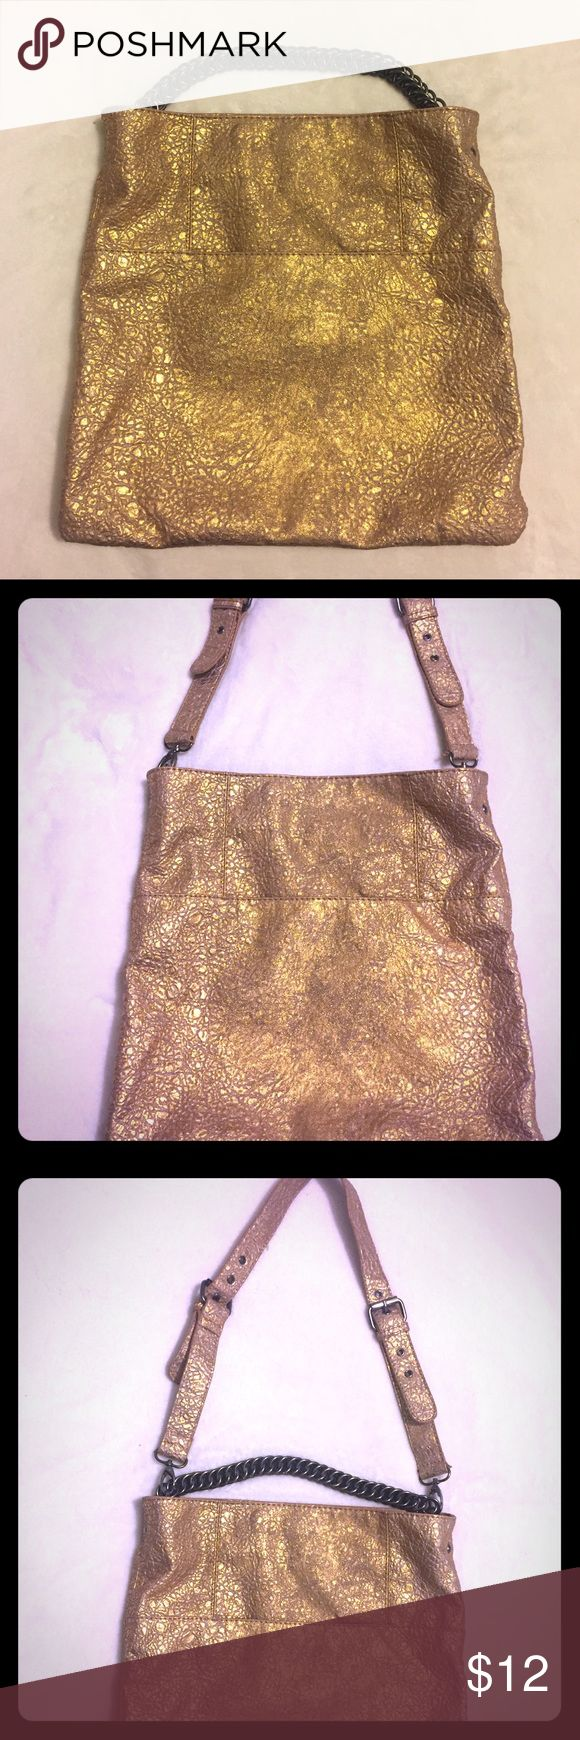 """Gold textured vegan leather tote hobo 32"""" Detachable Adjustable shoulder strap w/ dark Metal hardware. Also has a small intricately looped metal strap see pictures for details. Magnetic Hidden closure. 13.5"""" h x 14.5"""" wide soft hobo style tote with CLEAN brown fabric interior. Has 3 interior pockets to hold your phone, lipstick including a zipper pocket to hold your wallet. Great for looking cute while sneaking snacks into the movies with you BFF OR your boyfriend lol. GAP Bags Hobos"""